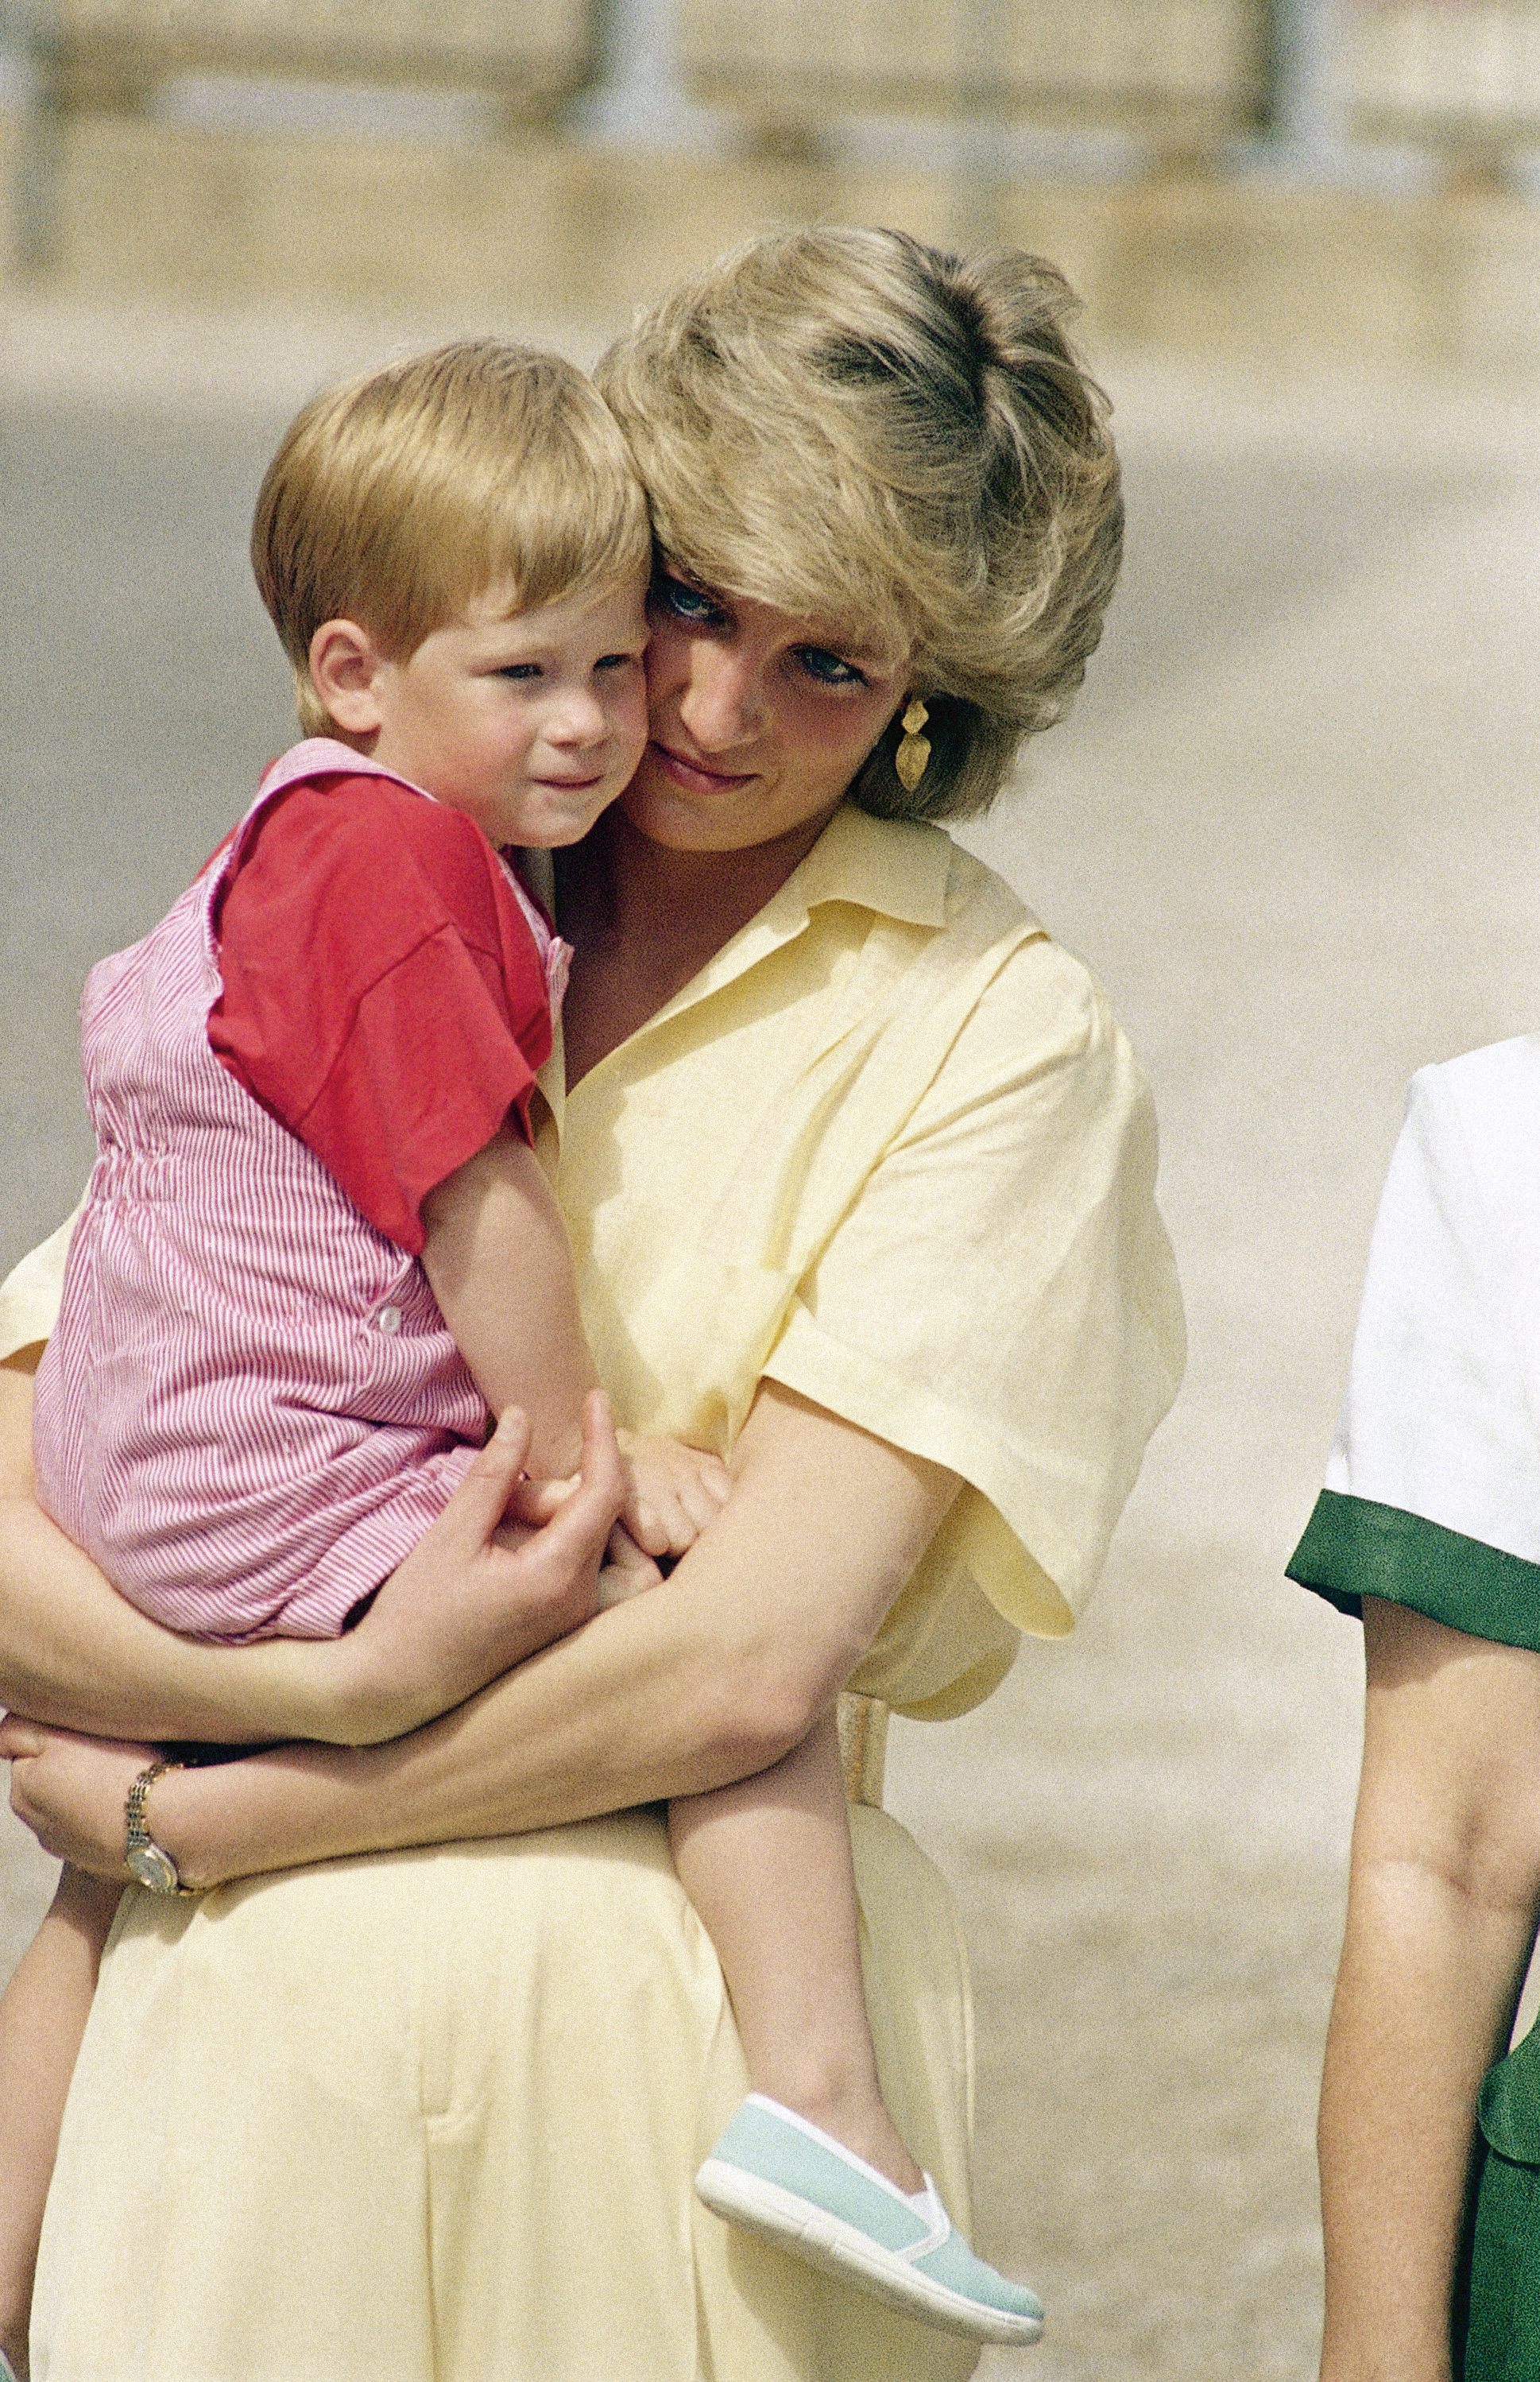 The Princess of Wales holds son Prince Harry while the royal family poses for photographers at the Royal Palace in Majorca, Spain on Aug. 9, 1987.